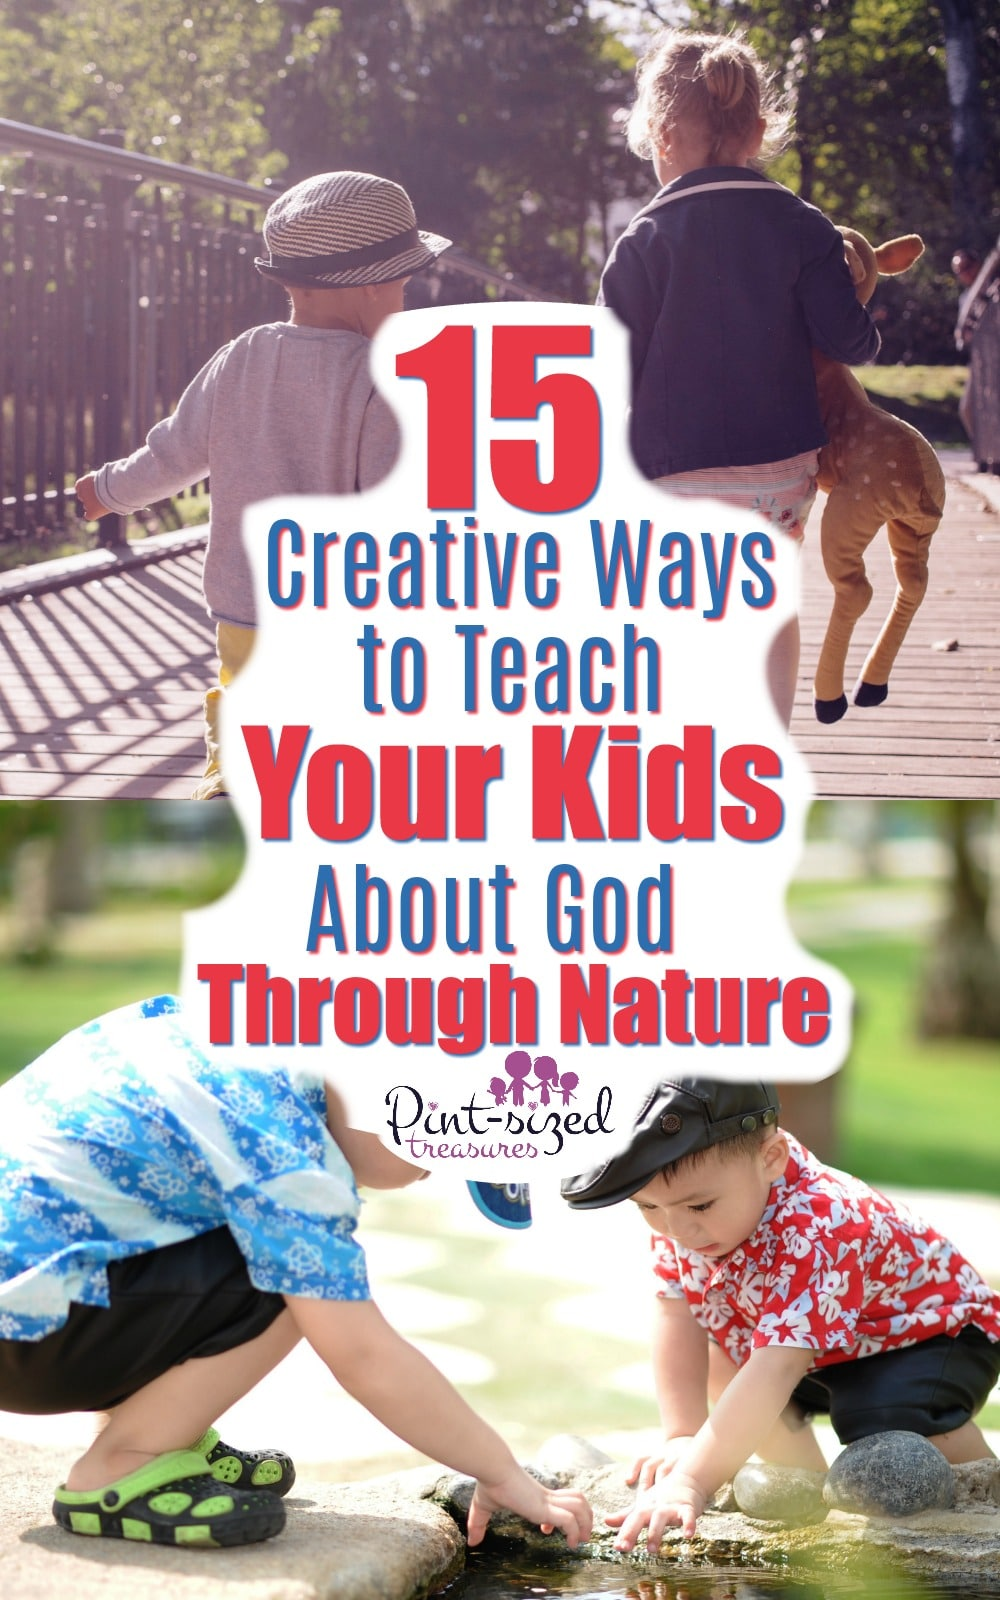 Teach Kids About God Through Nature